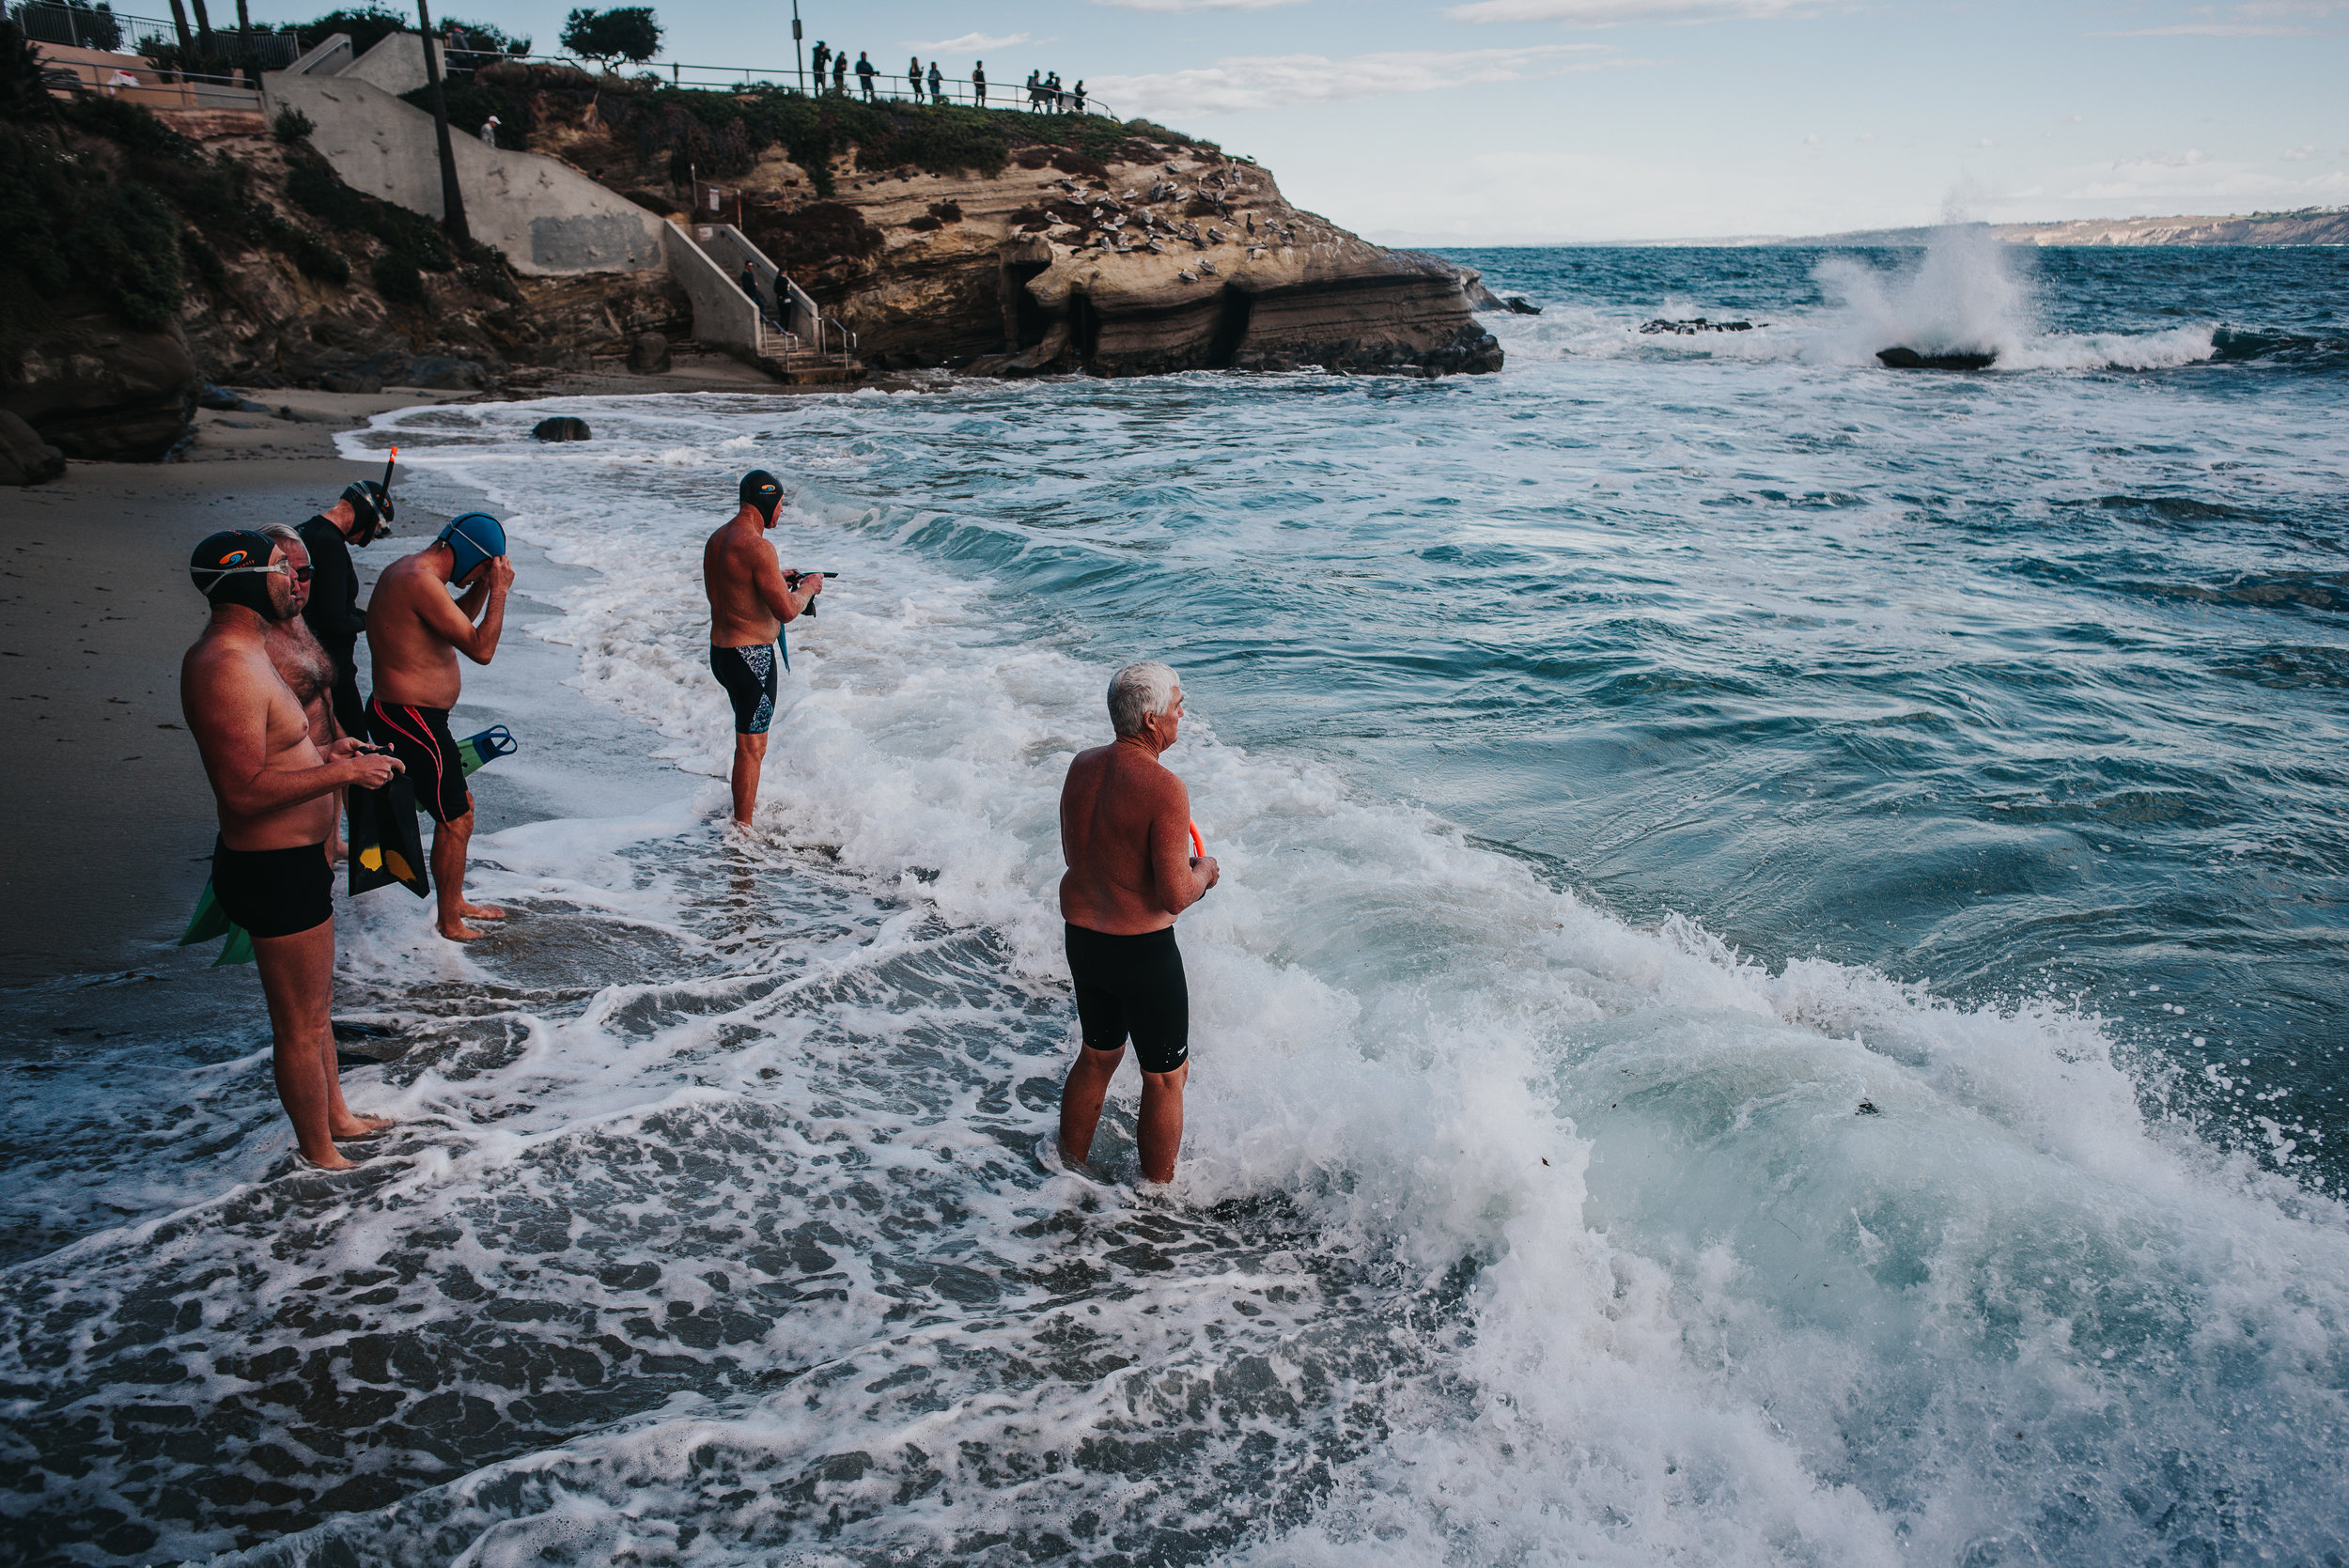 Older men brace the fierce California surf.